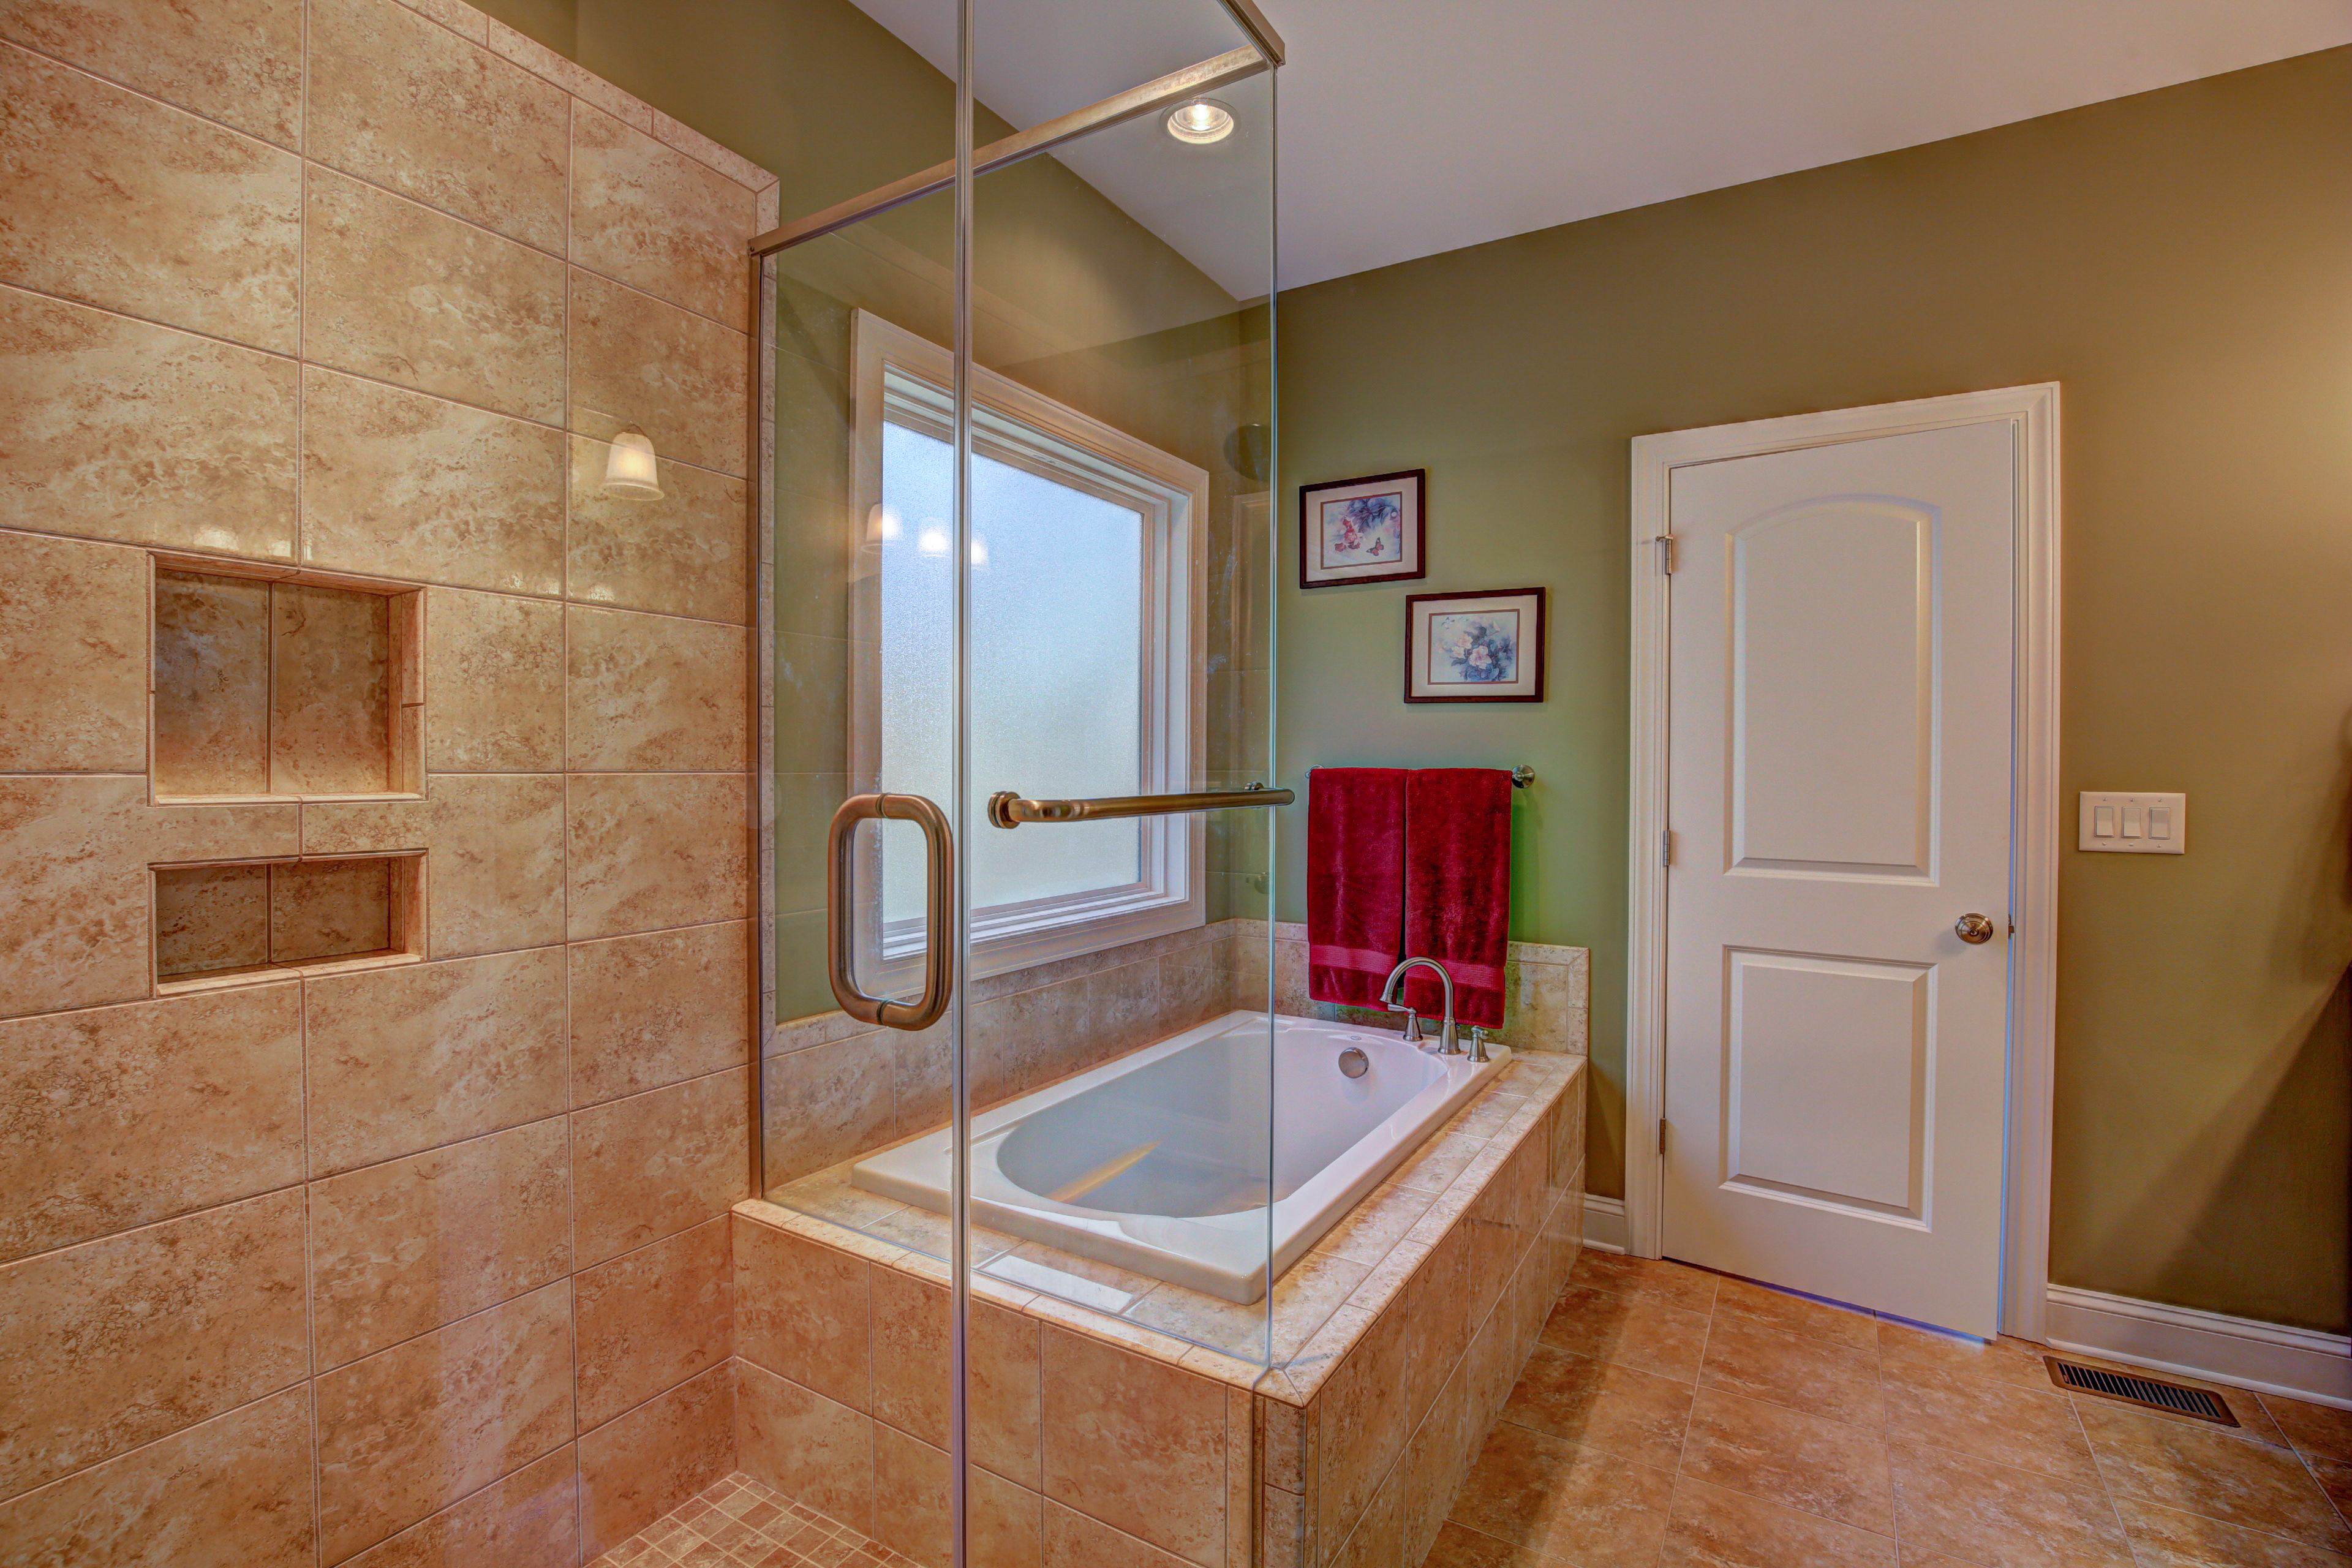 8810 Master tub and shower